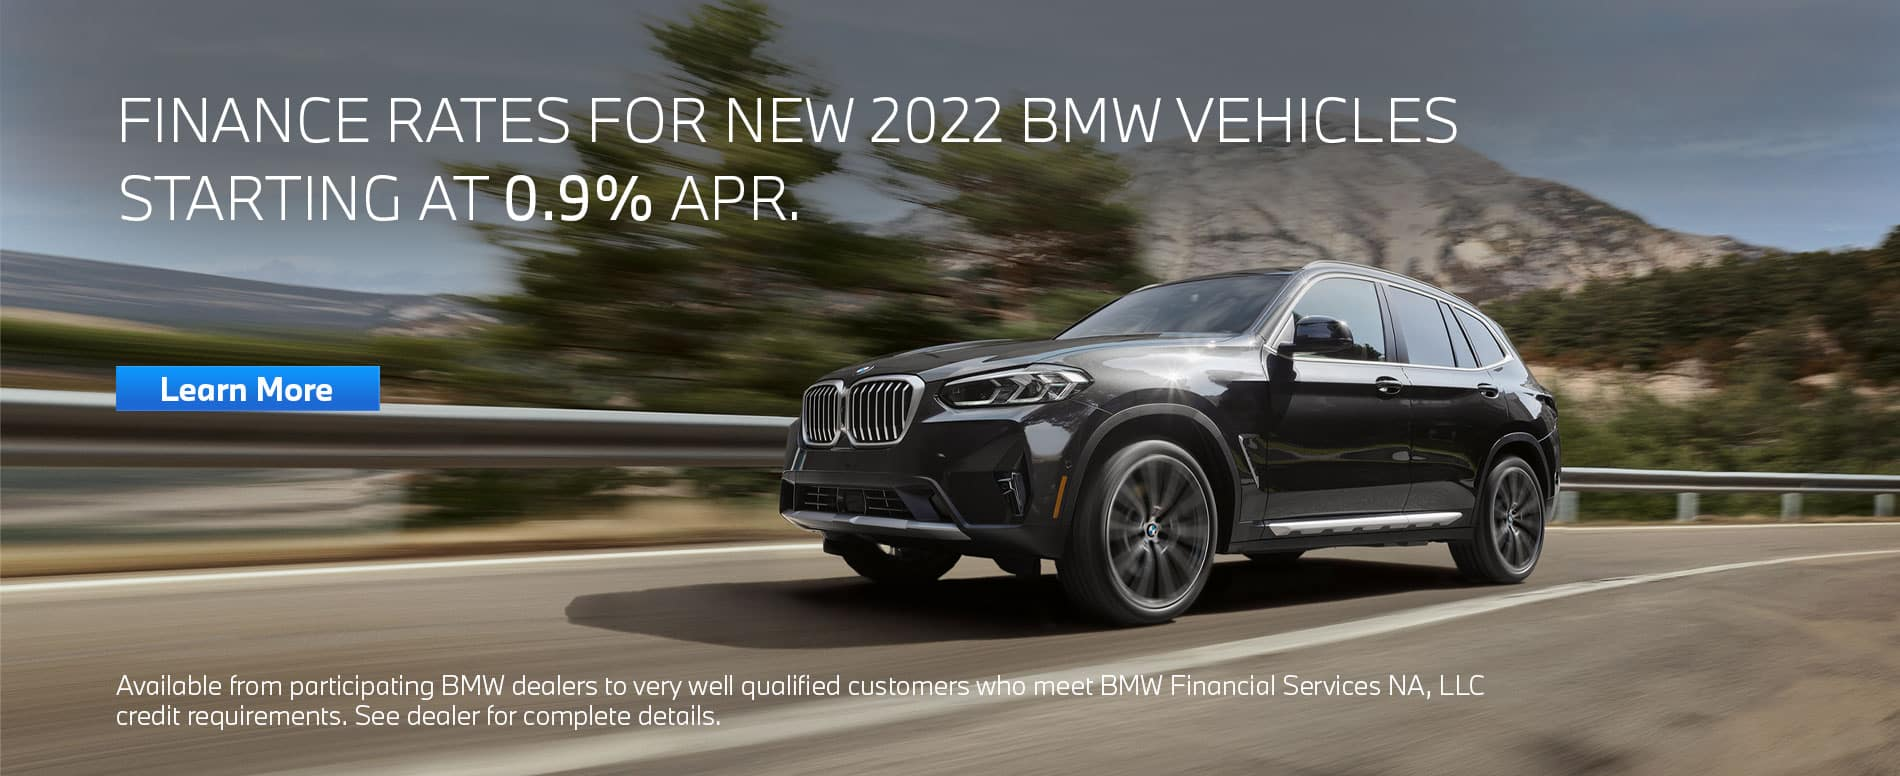 Finance a New 2022 BMW from 0.9% APR. Grey X3 driving down road.